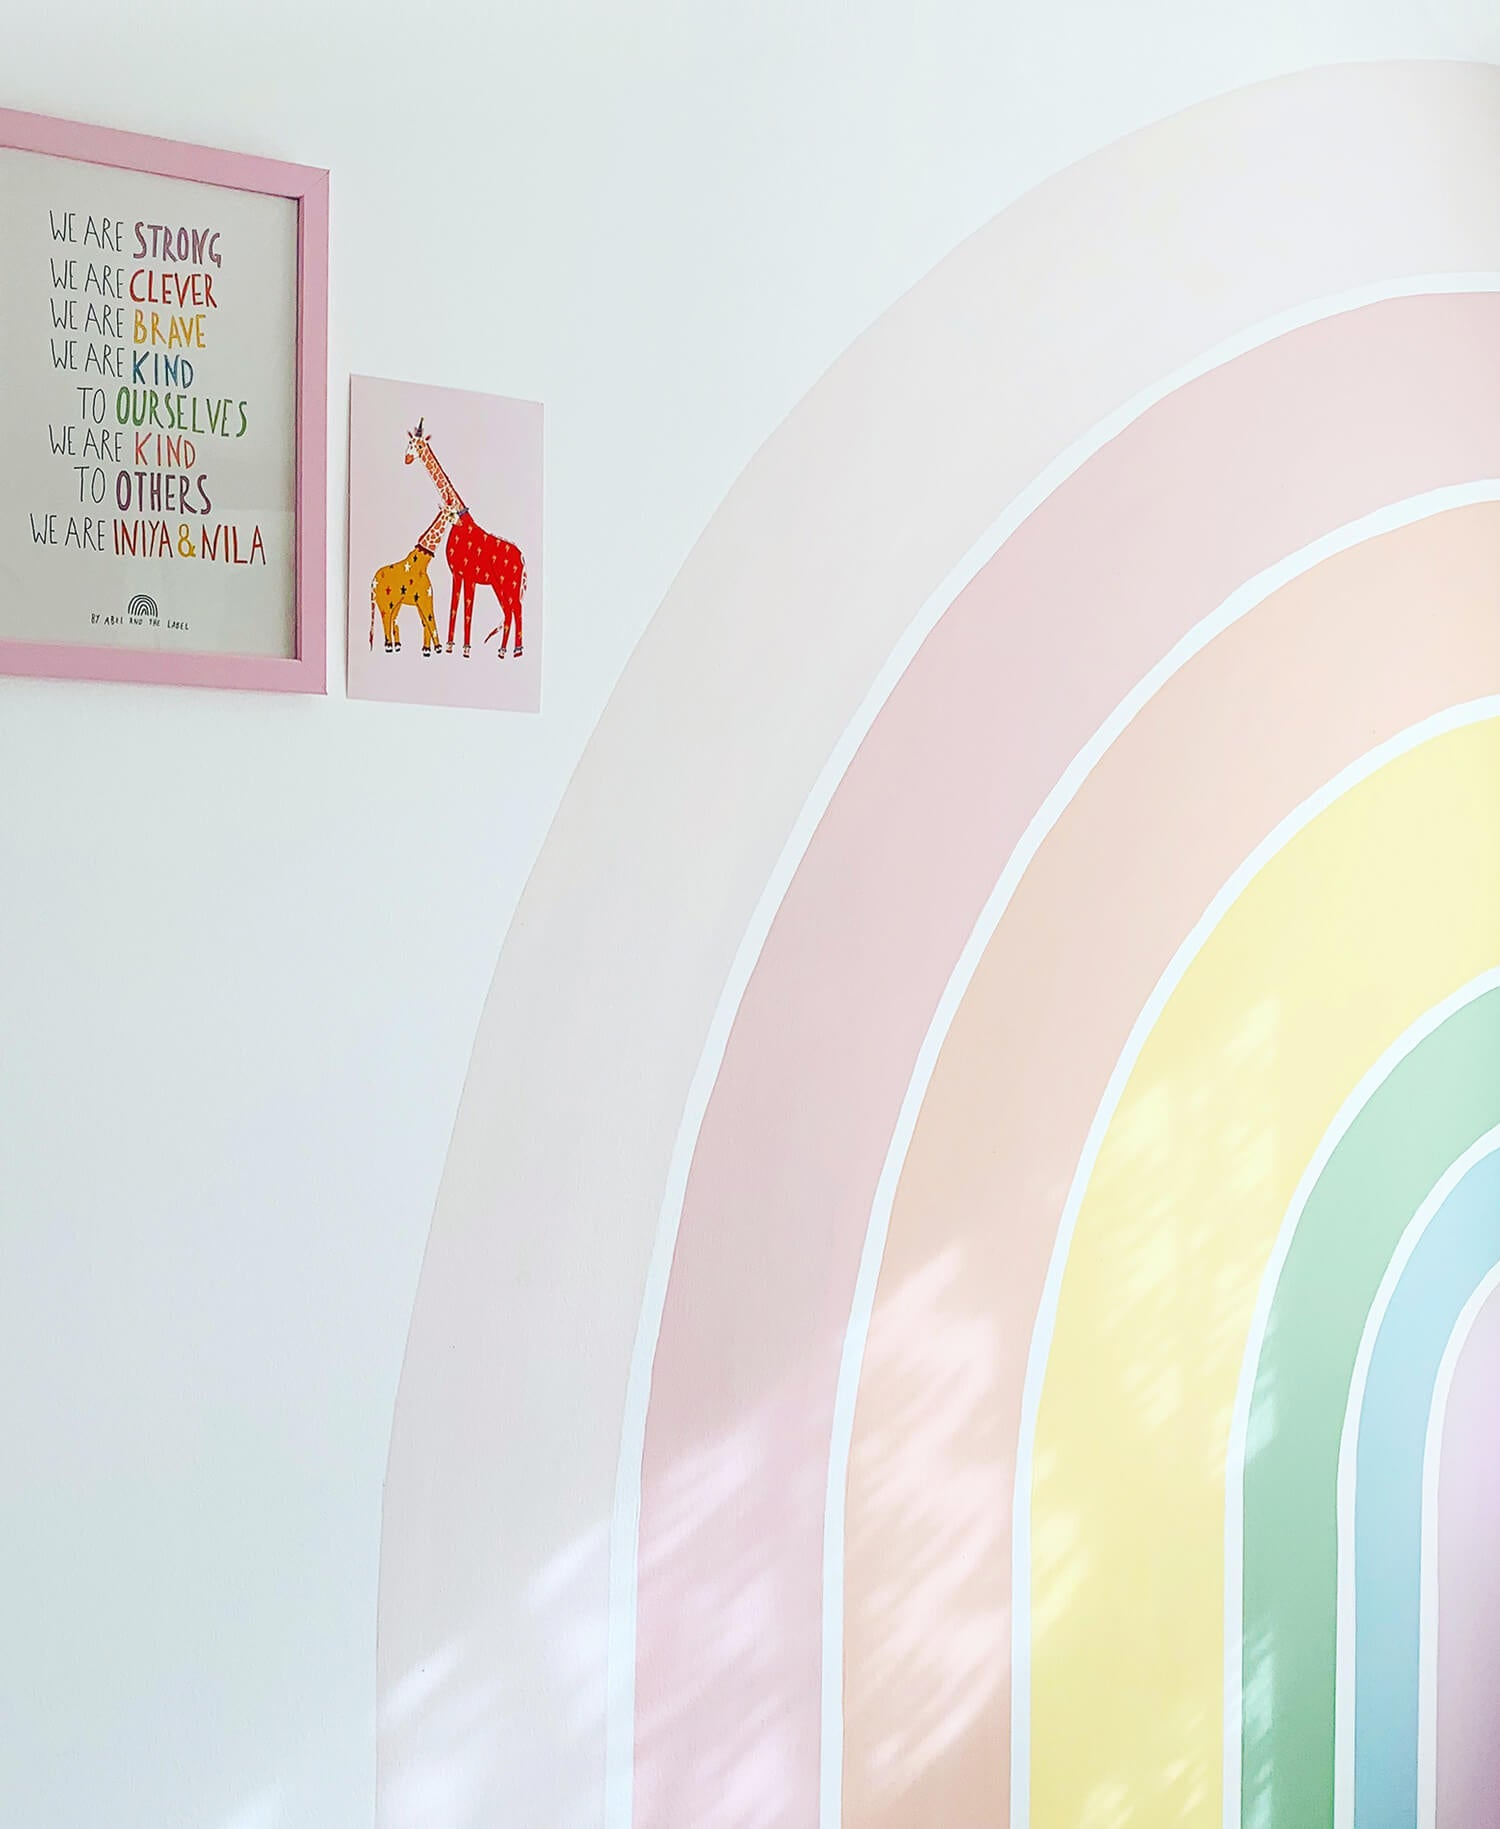 Modern diy rainbow wall mural in pastel colored shared girl's room interior